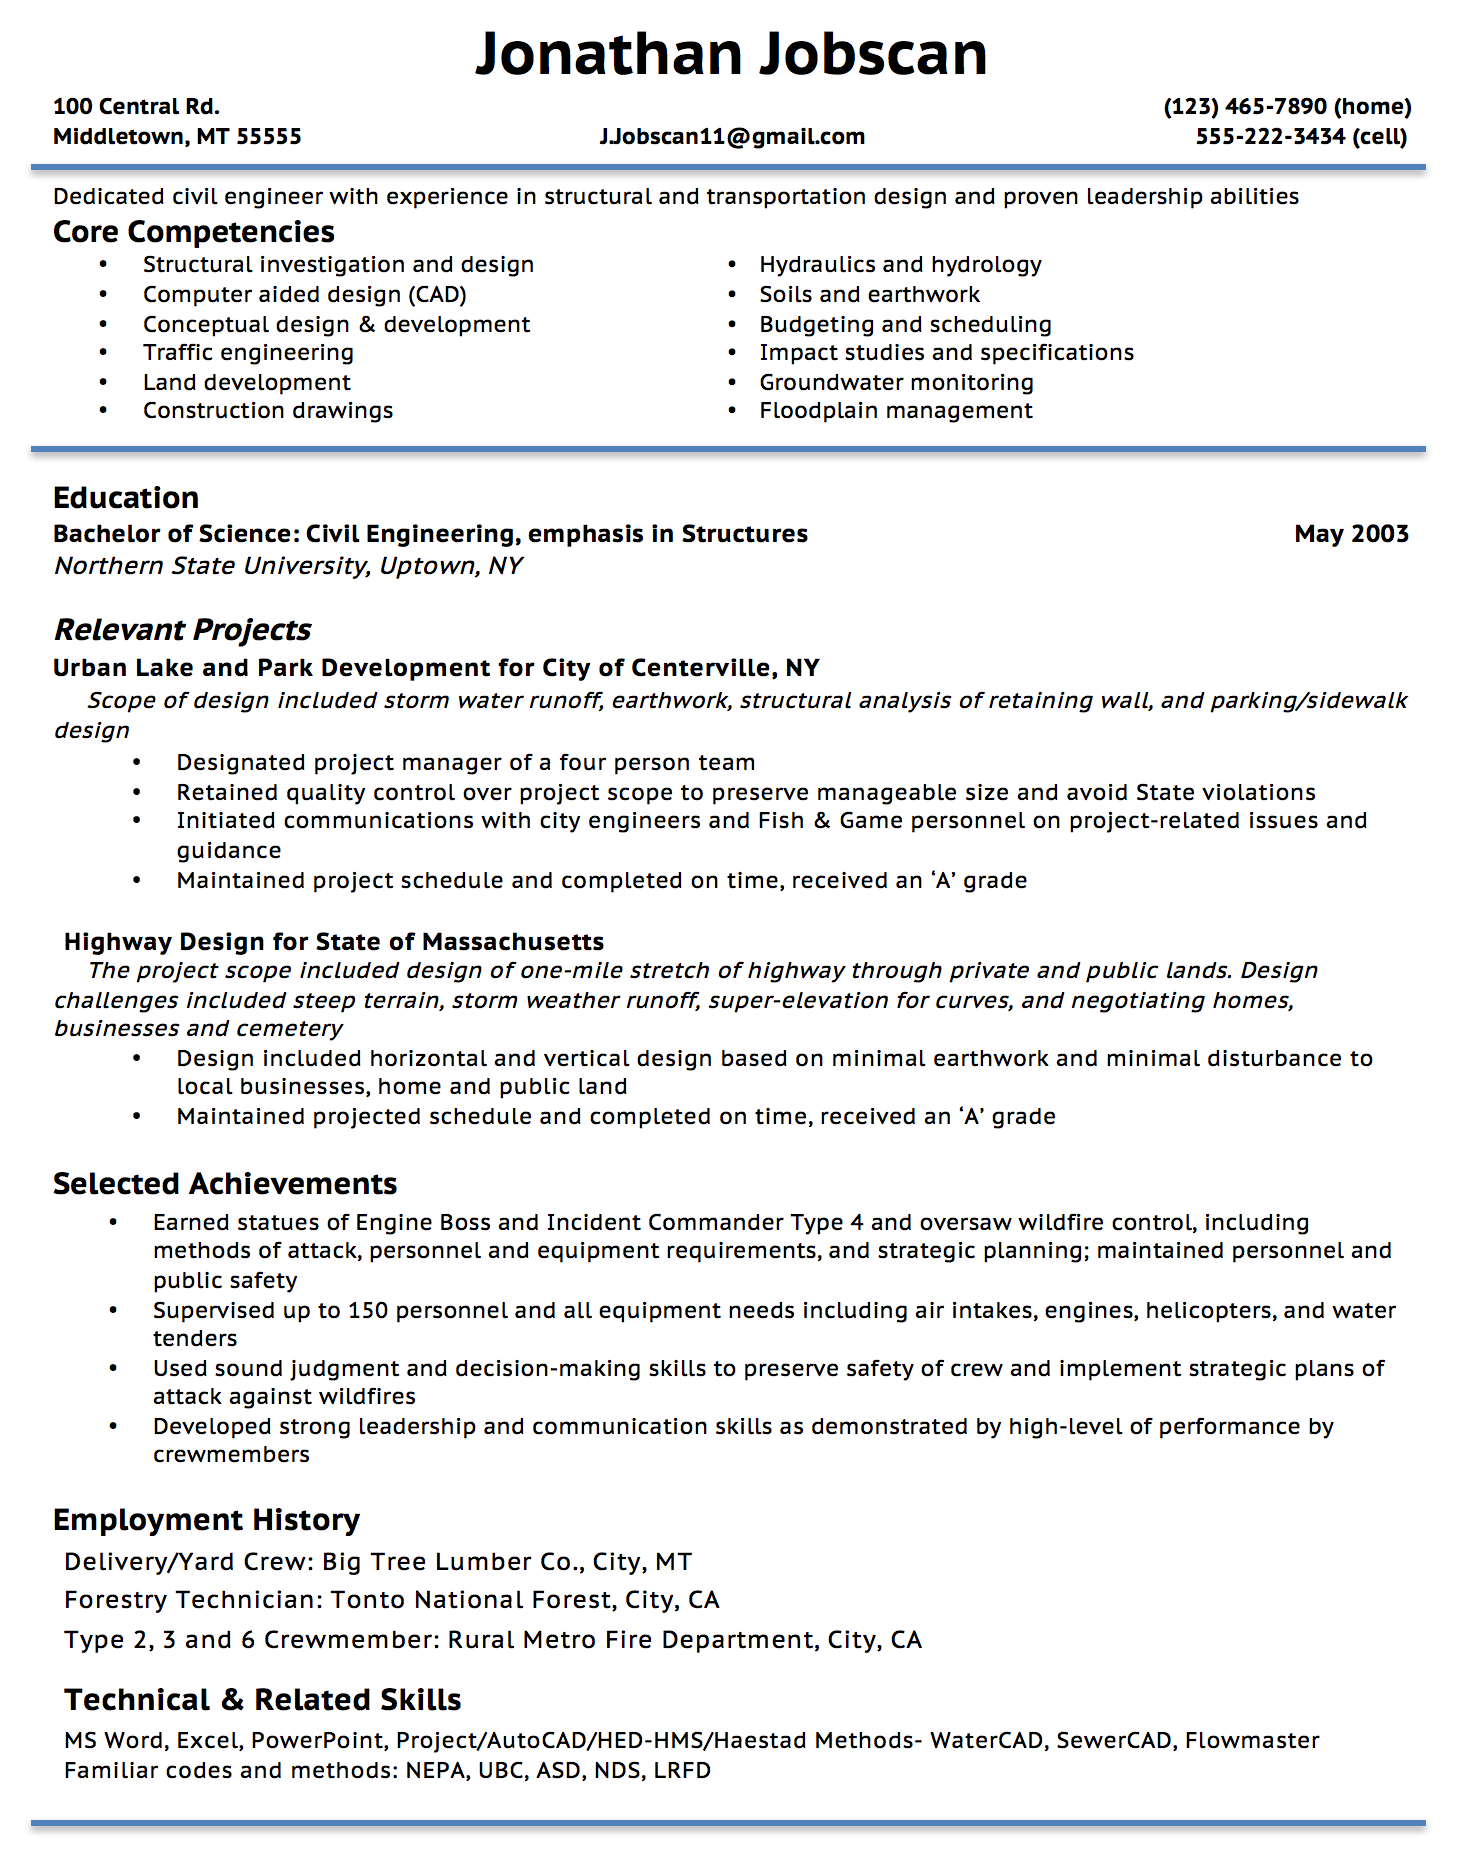 Opposenewapstandardsus  Inspiring Resume Writing Guide  Jobscan With Fascinating Example Of A Functional Resume Format With Enchanting Sample Hair Stylist Resume Also Submitting Resume Via Email In Addition Nursing Resumes Samples And New Nurse Graduate Resume As Well As Core Skills Resume Additionally Job Resume Objectives From Jobscanco With Opposenewapstandardsus  Fascinating Resume Writing Guide  Jobscan With Enchanting Example Of A Functional Resume Format And Inspiring Sample Hair Stylist Resume Also Submitting Resume Via Email In Addition Nursing Resumes Samples From Jobscanco